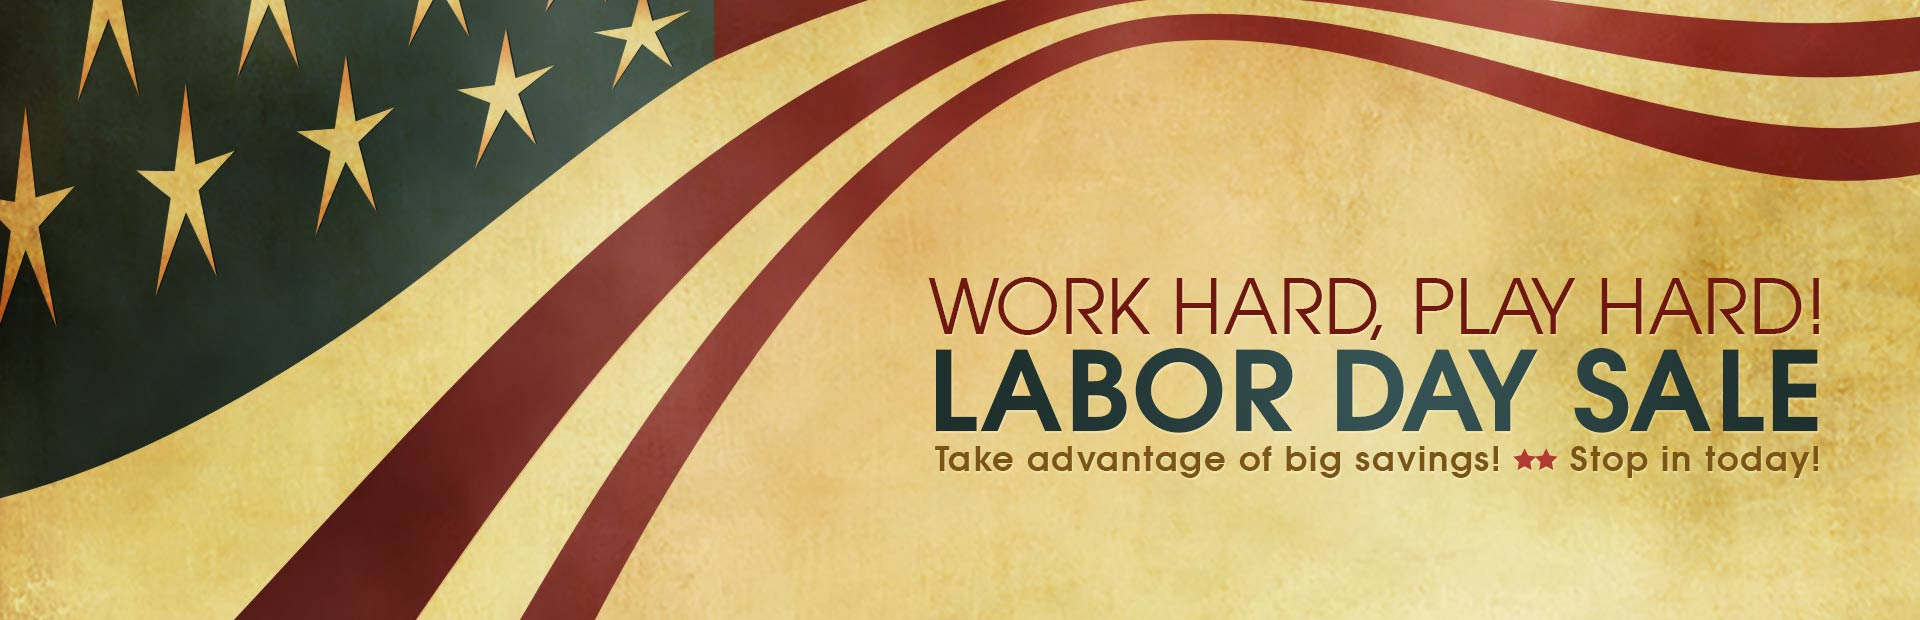 Take advantage of big savings during our Labor Day Sale! Stop in today. Click here to shop.